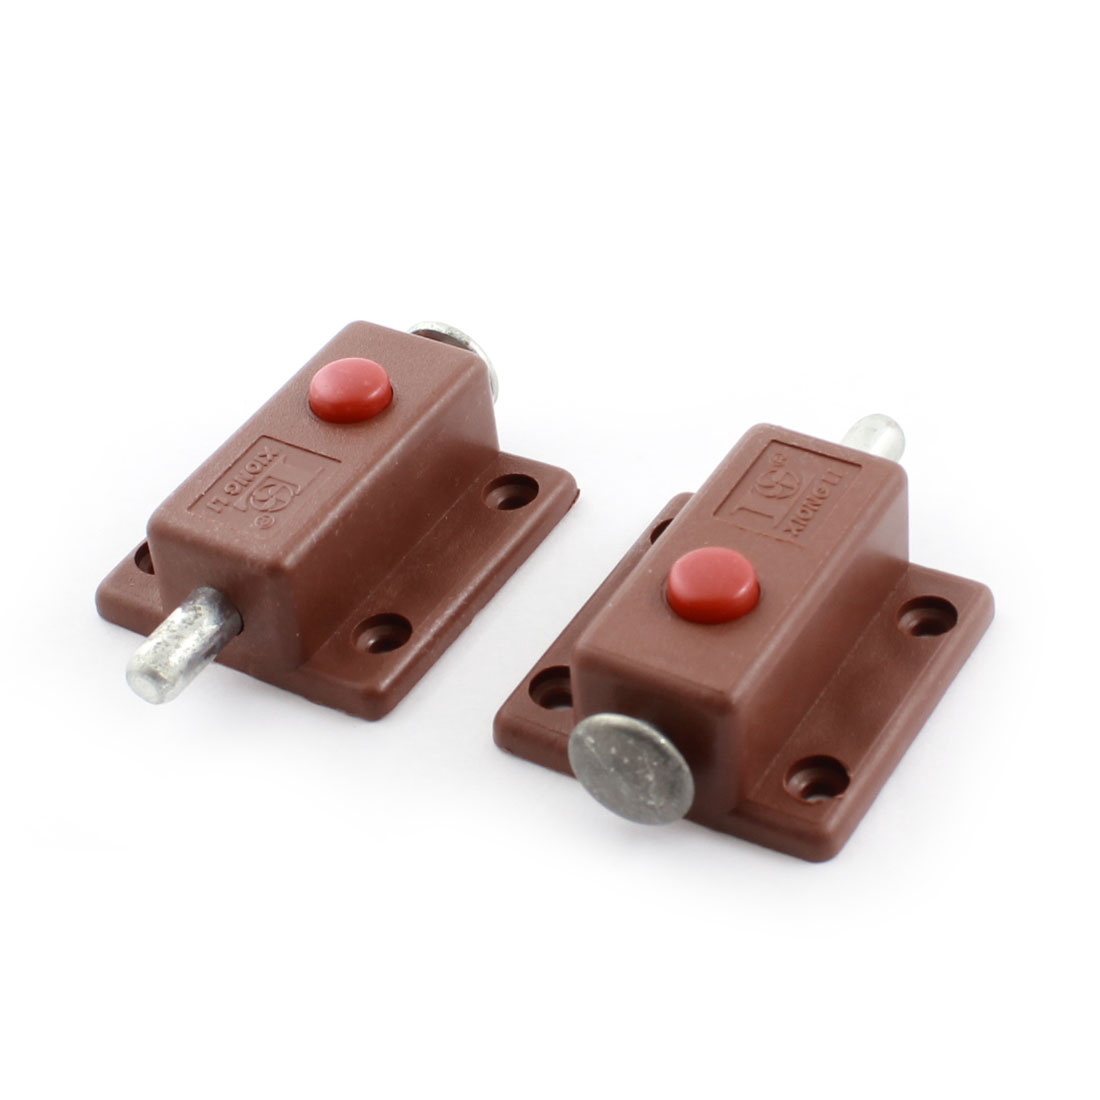 2Pcs Door Screw Mounted Brown Plastic Automatic Lock Barrel Bolt